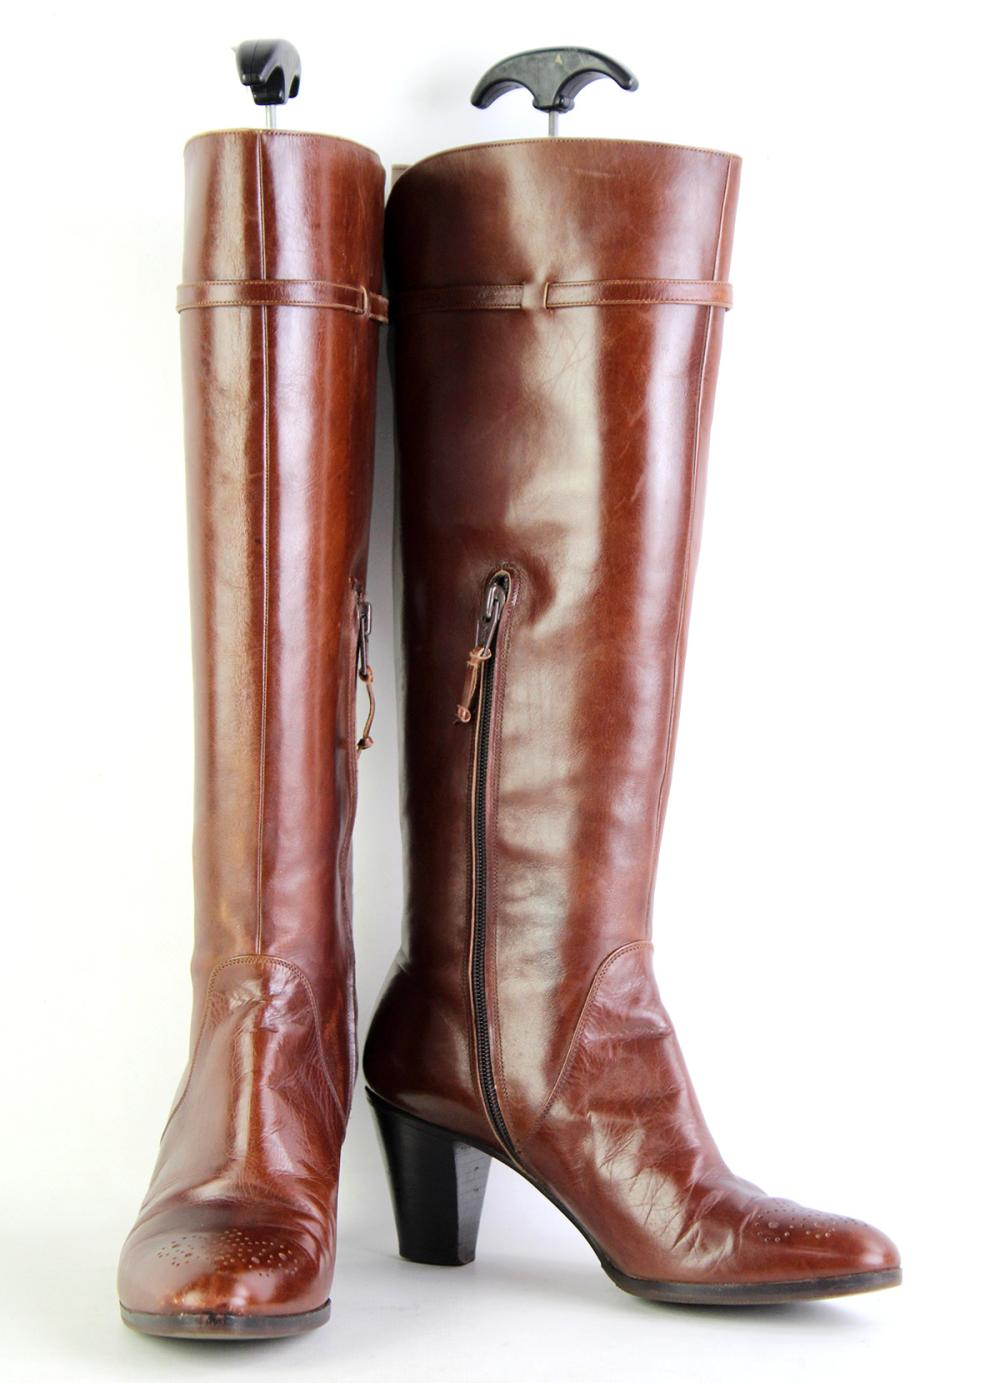 A PAIR OF SALVATORE FERRAGAMO BROWN LEATHER BOOTS; UU6585 7002, size 6B.